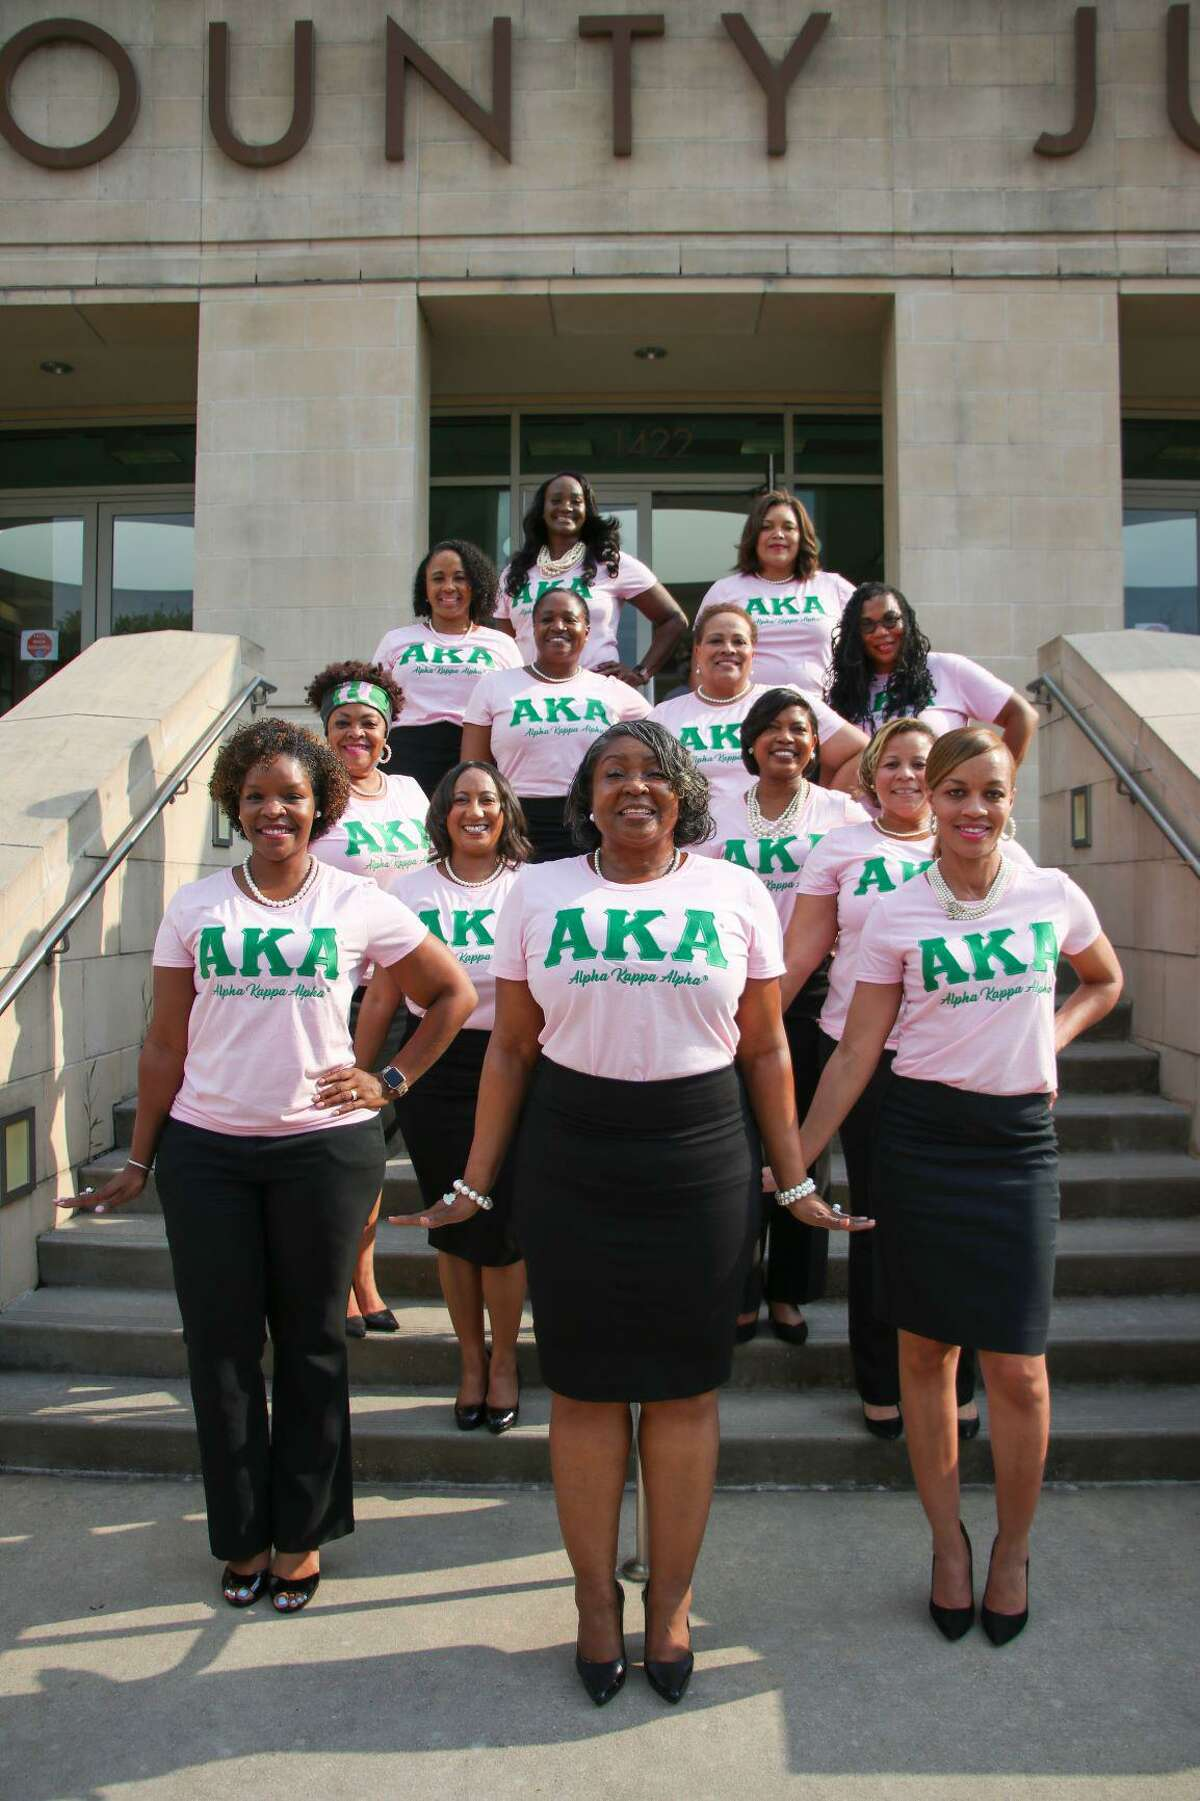 On Friday, June 18, 2021, Fort Bend County recognized its elected officials and county-level employees who are members of African American Greek Letter organizations. Shown here are members representing Alpha Kappa Alpha.